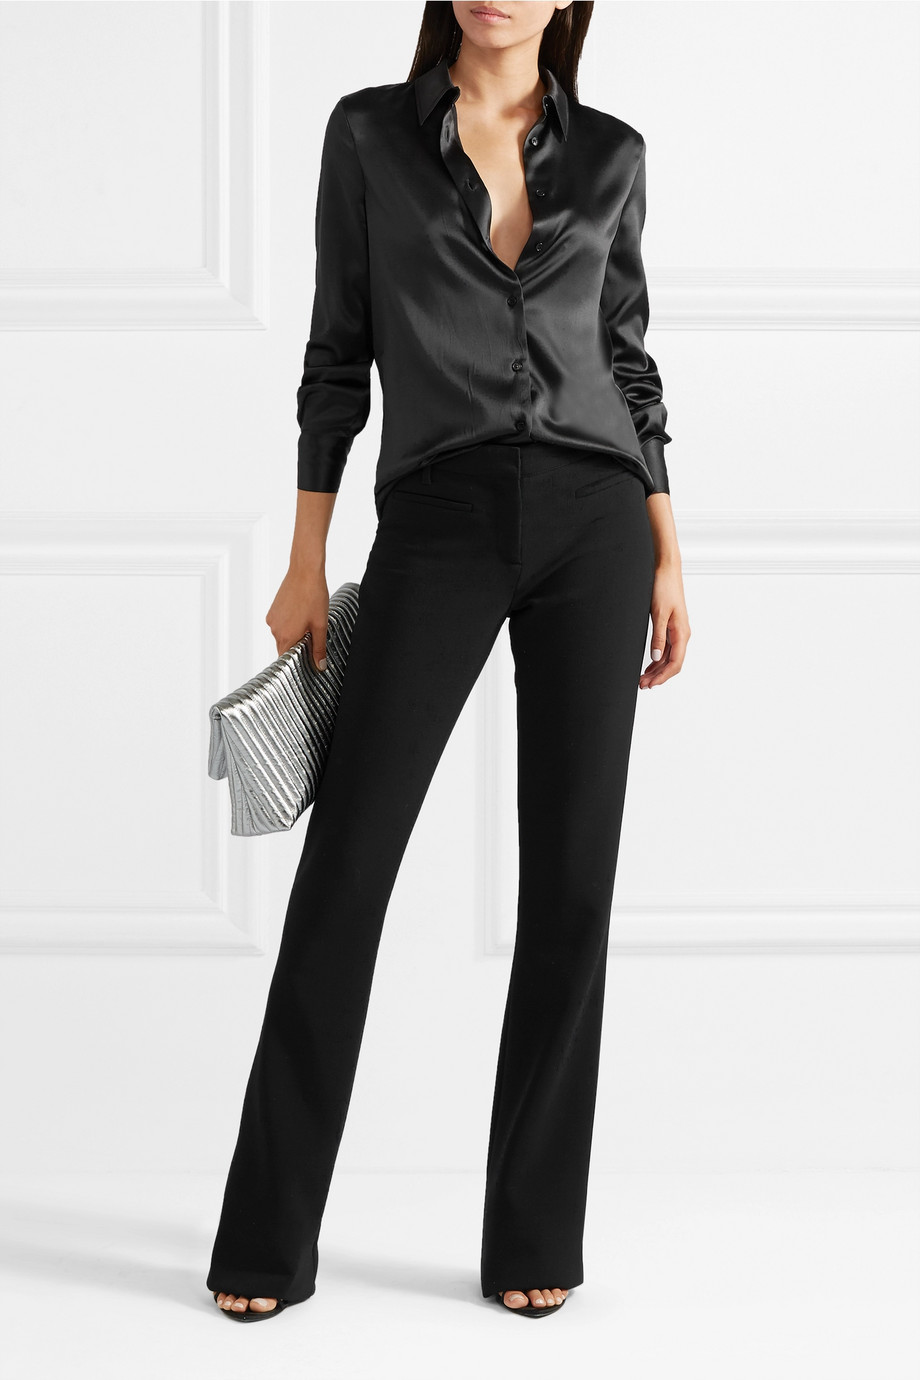 TOM FORD Wool-blend flared pants